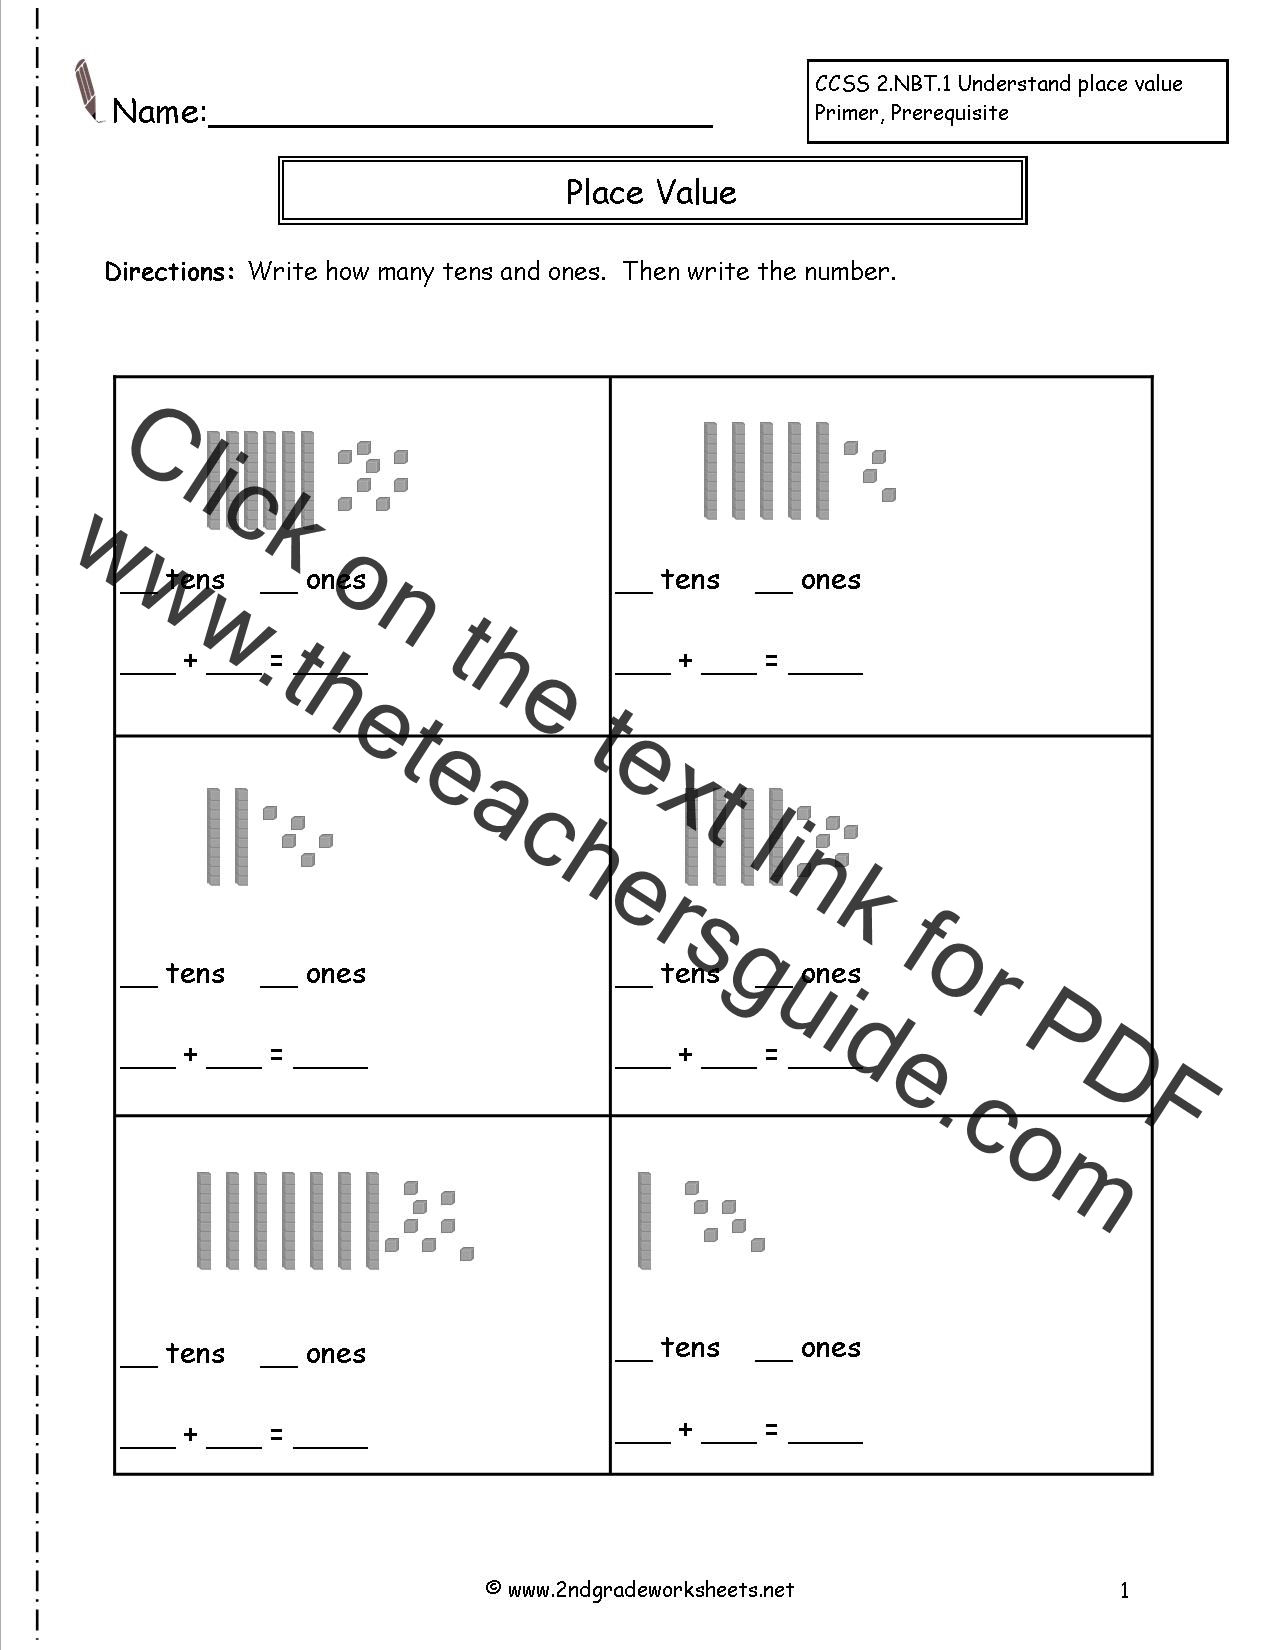 Place Value Worksheet 5th Grade Common Core